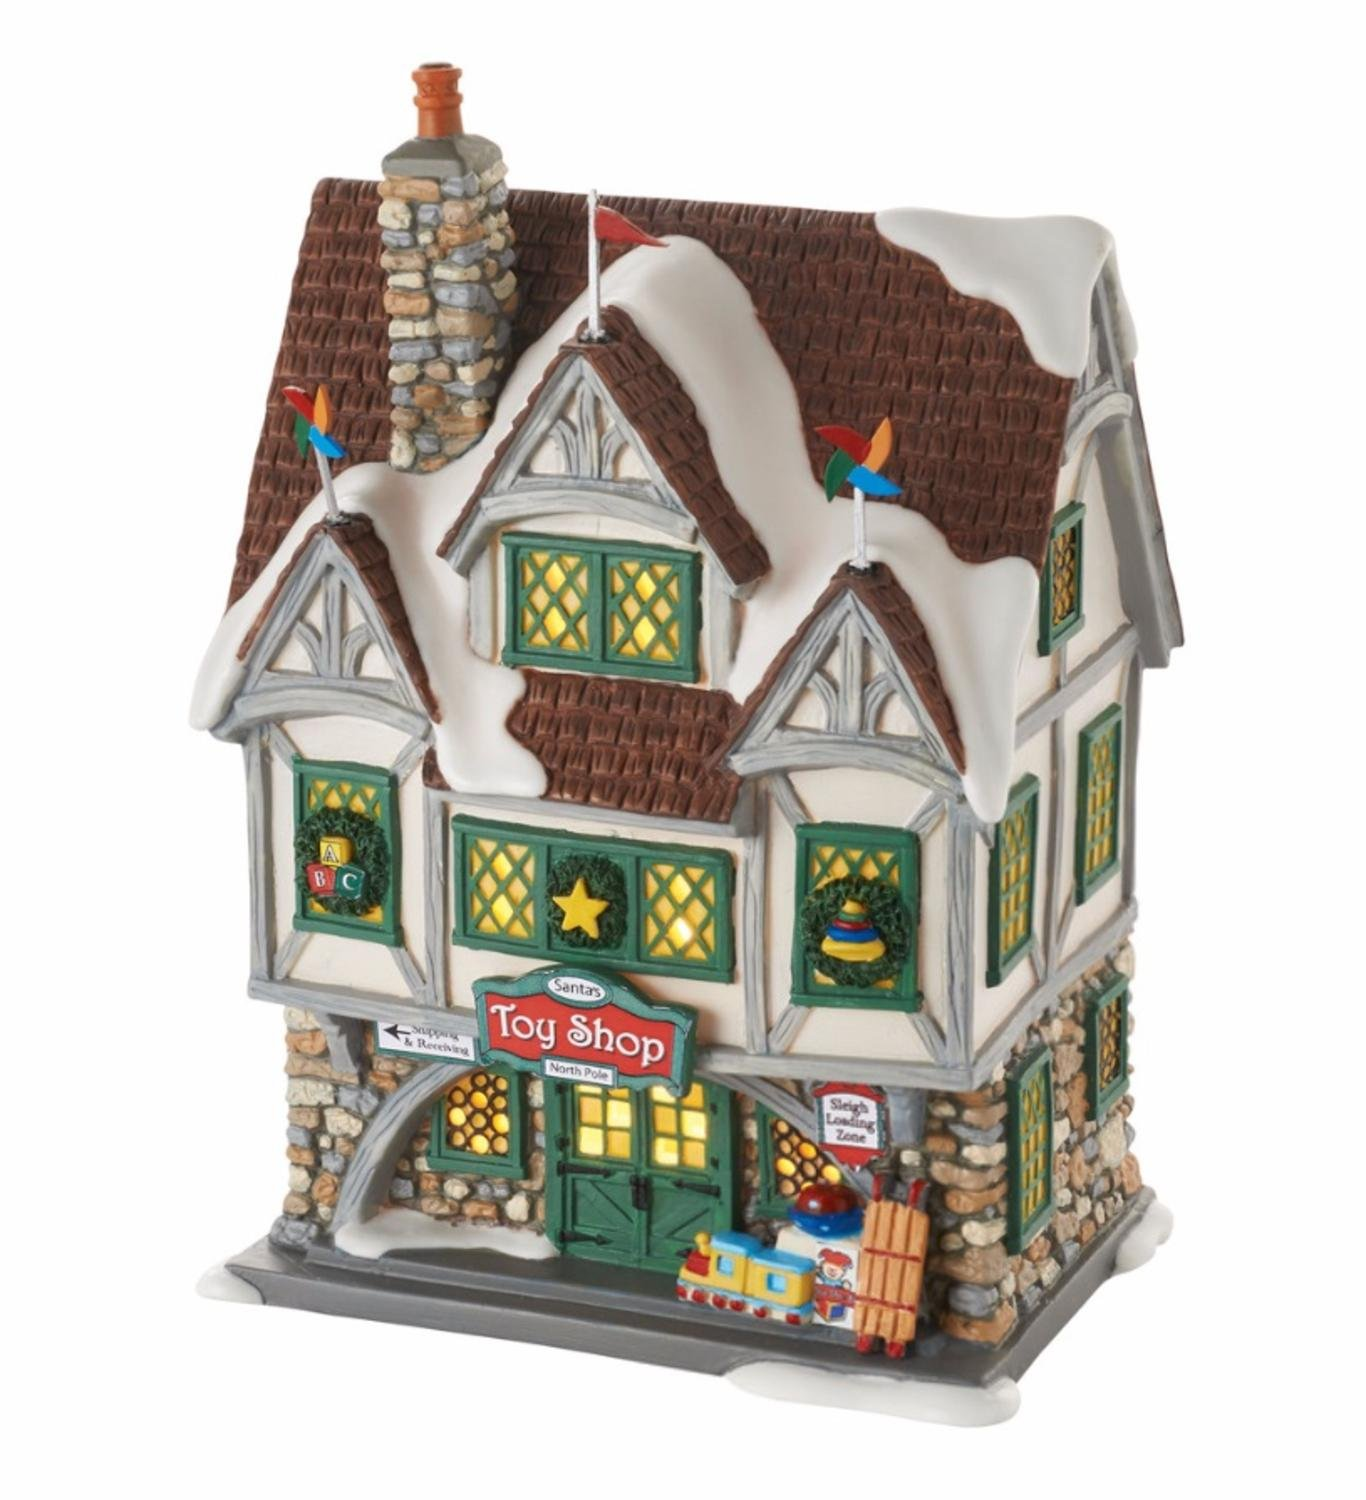 Department 56 Elf The Movie Santa's Toy Shop Lighted Building #4053057